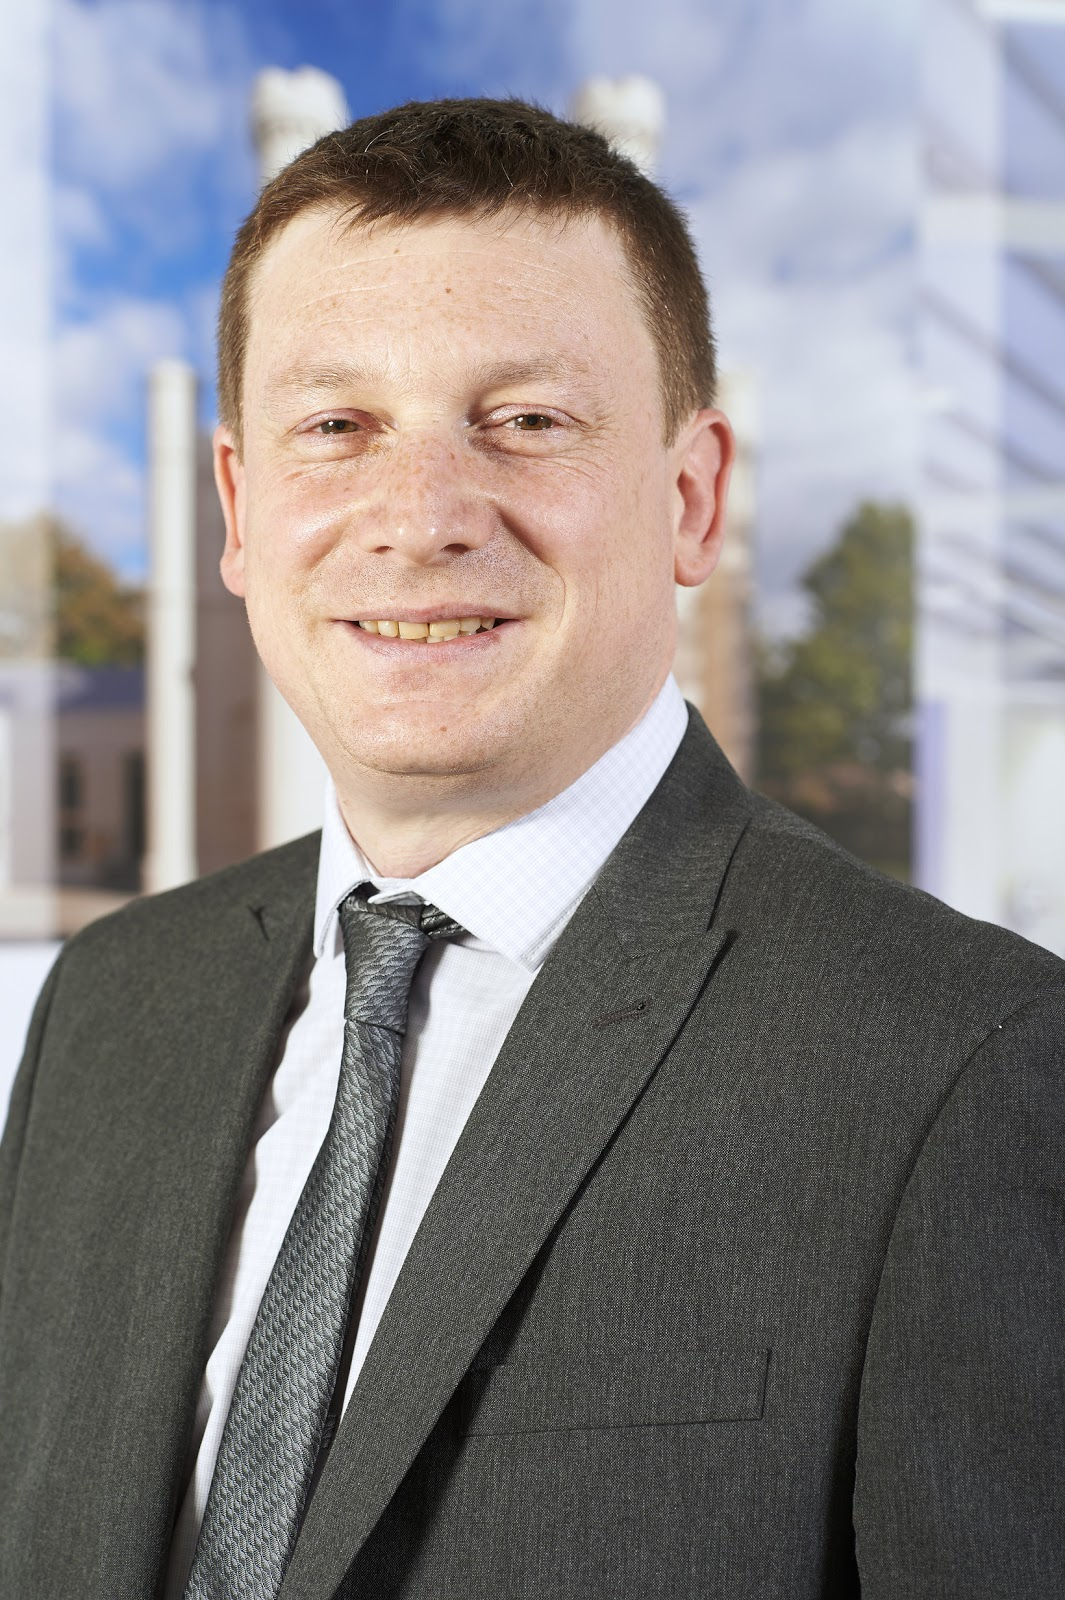 Ingleton Wood Has an Appointment of a New Senior Associate for the Company